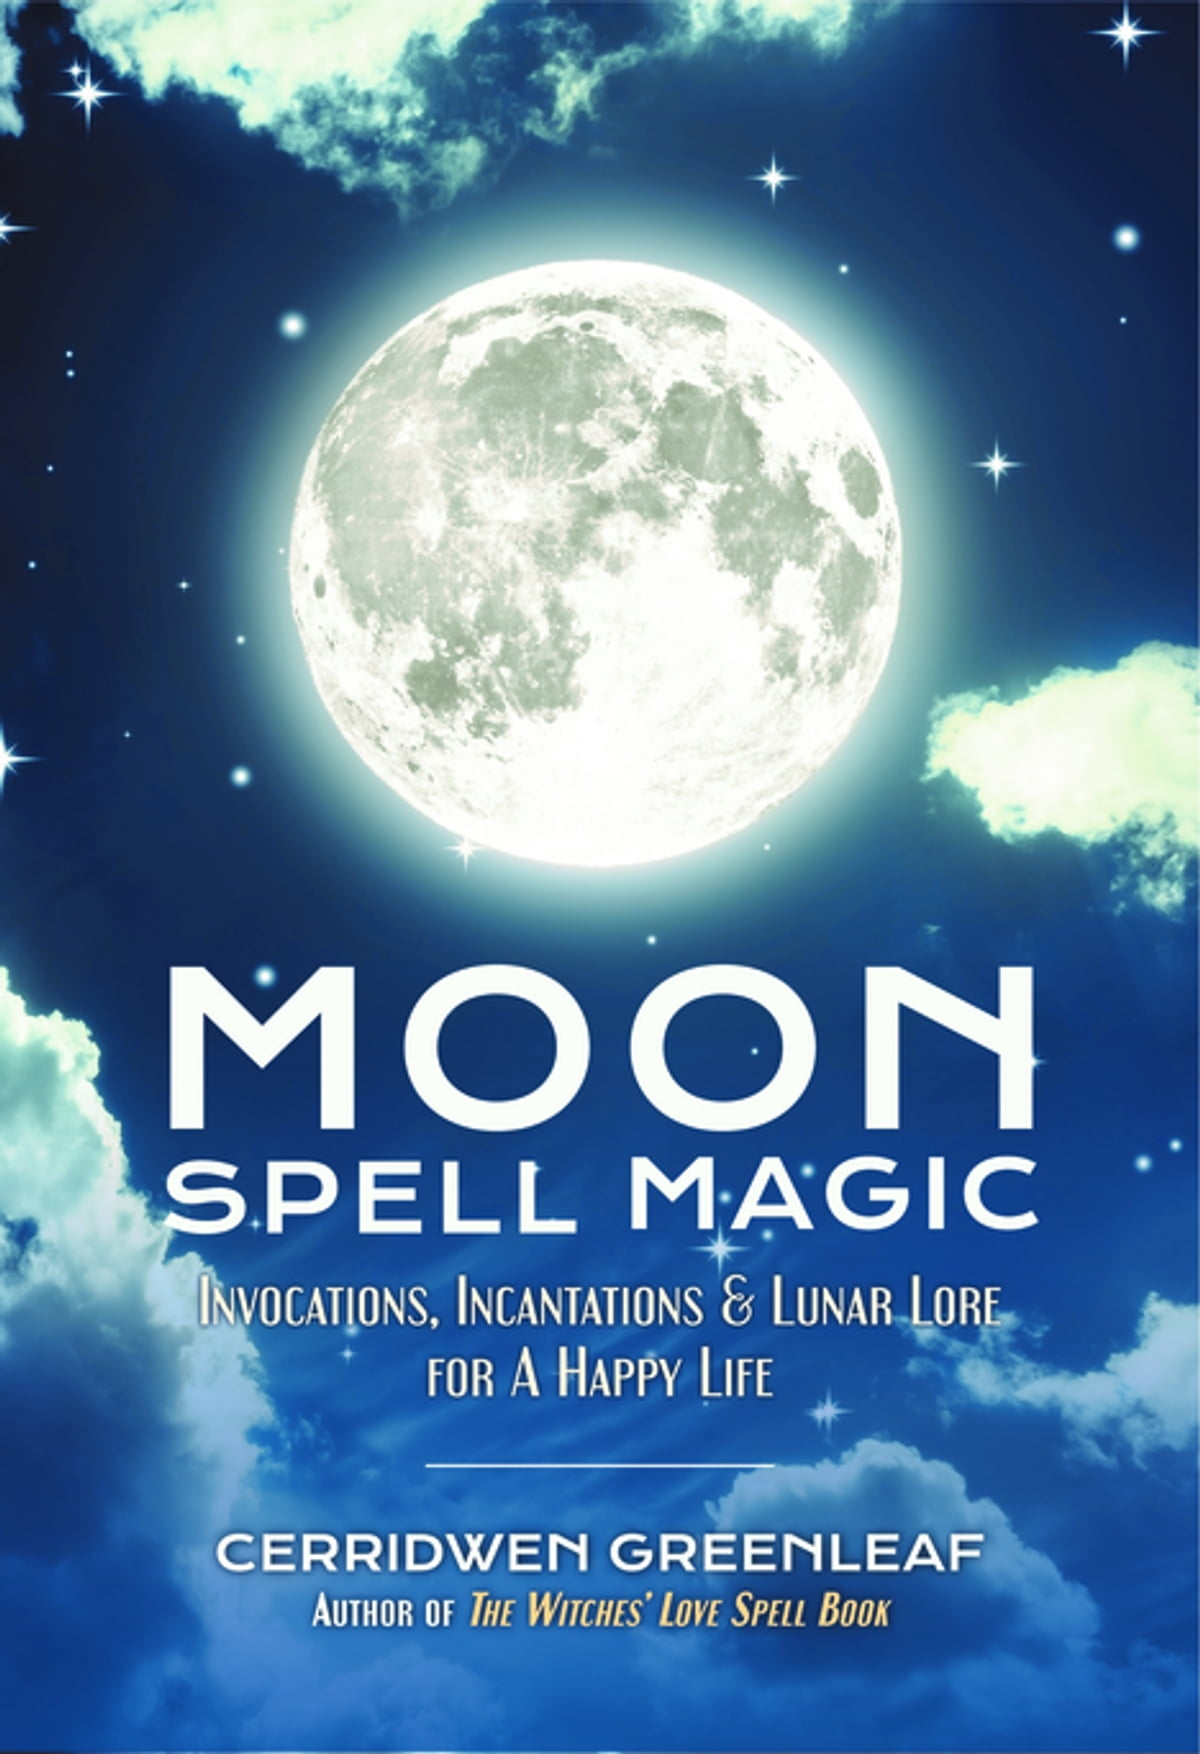 Moon Spell Magic eBook by Cerridwen Greenleaf - 9781633535633 ...